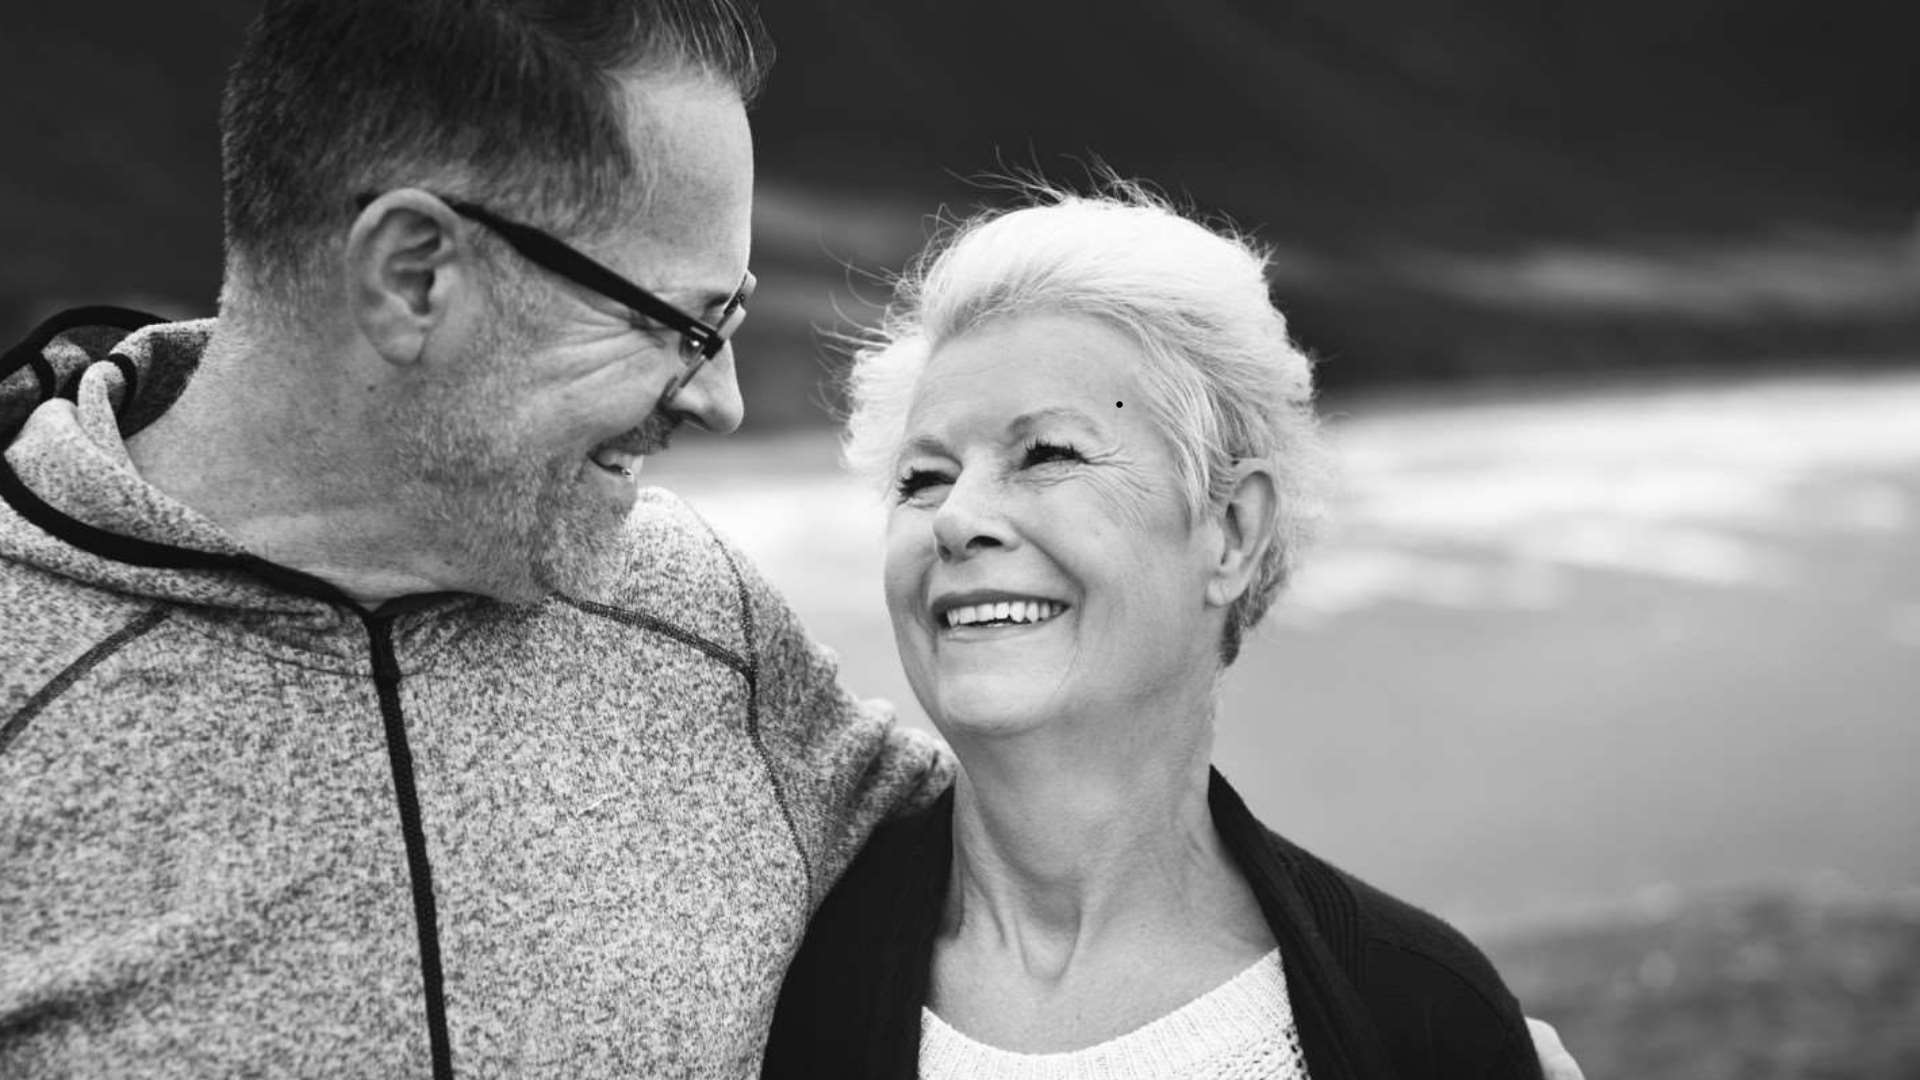 Tips for Moving Your Aging Parent into Their New Senior Living Home